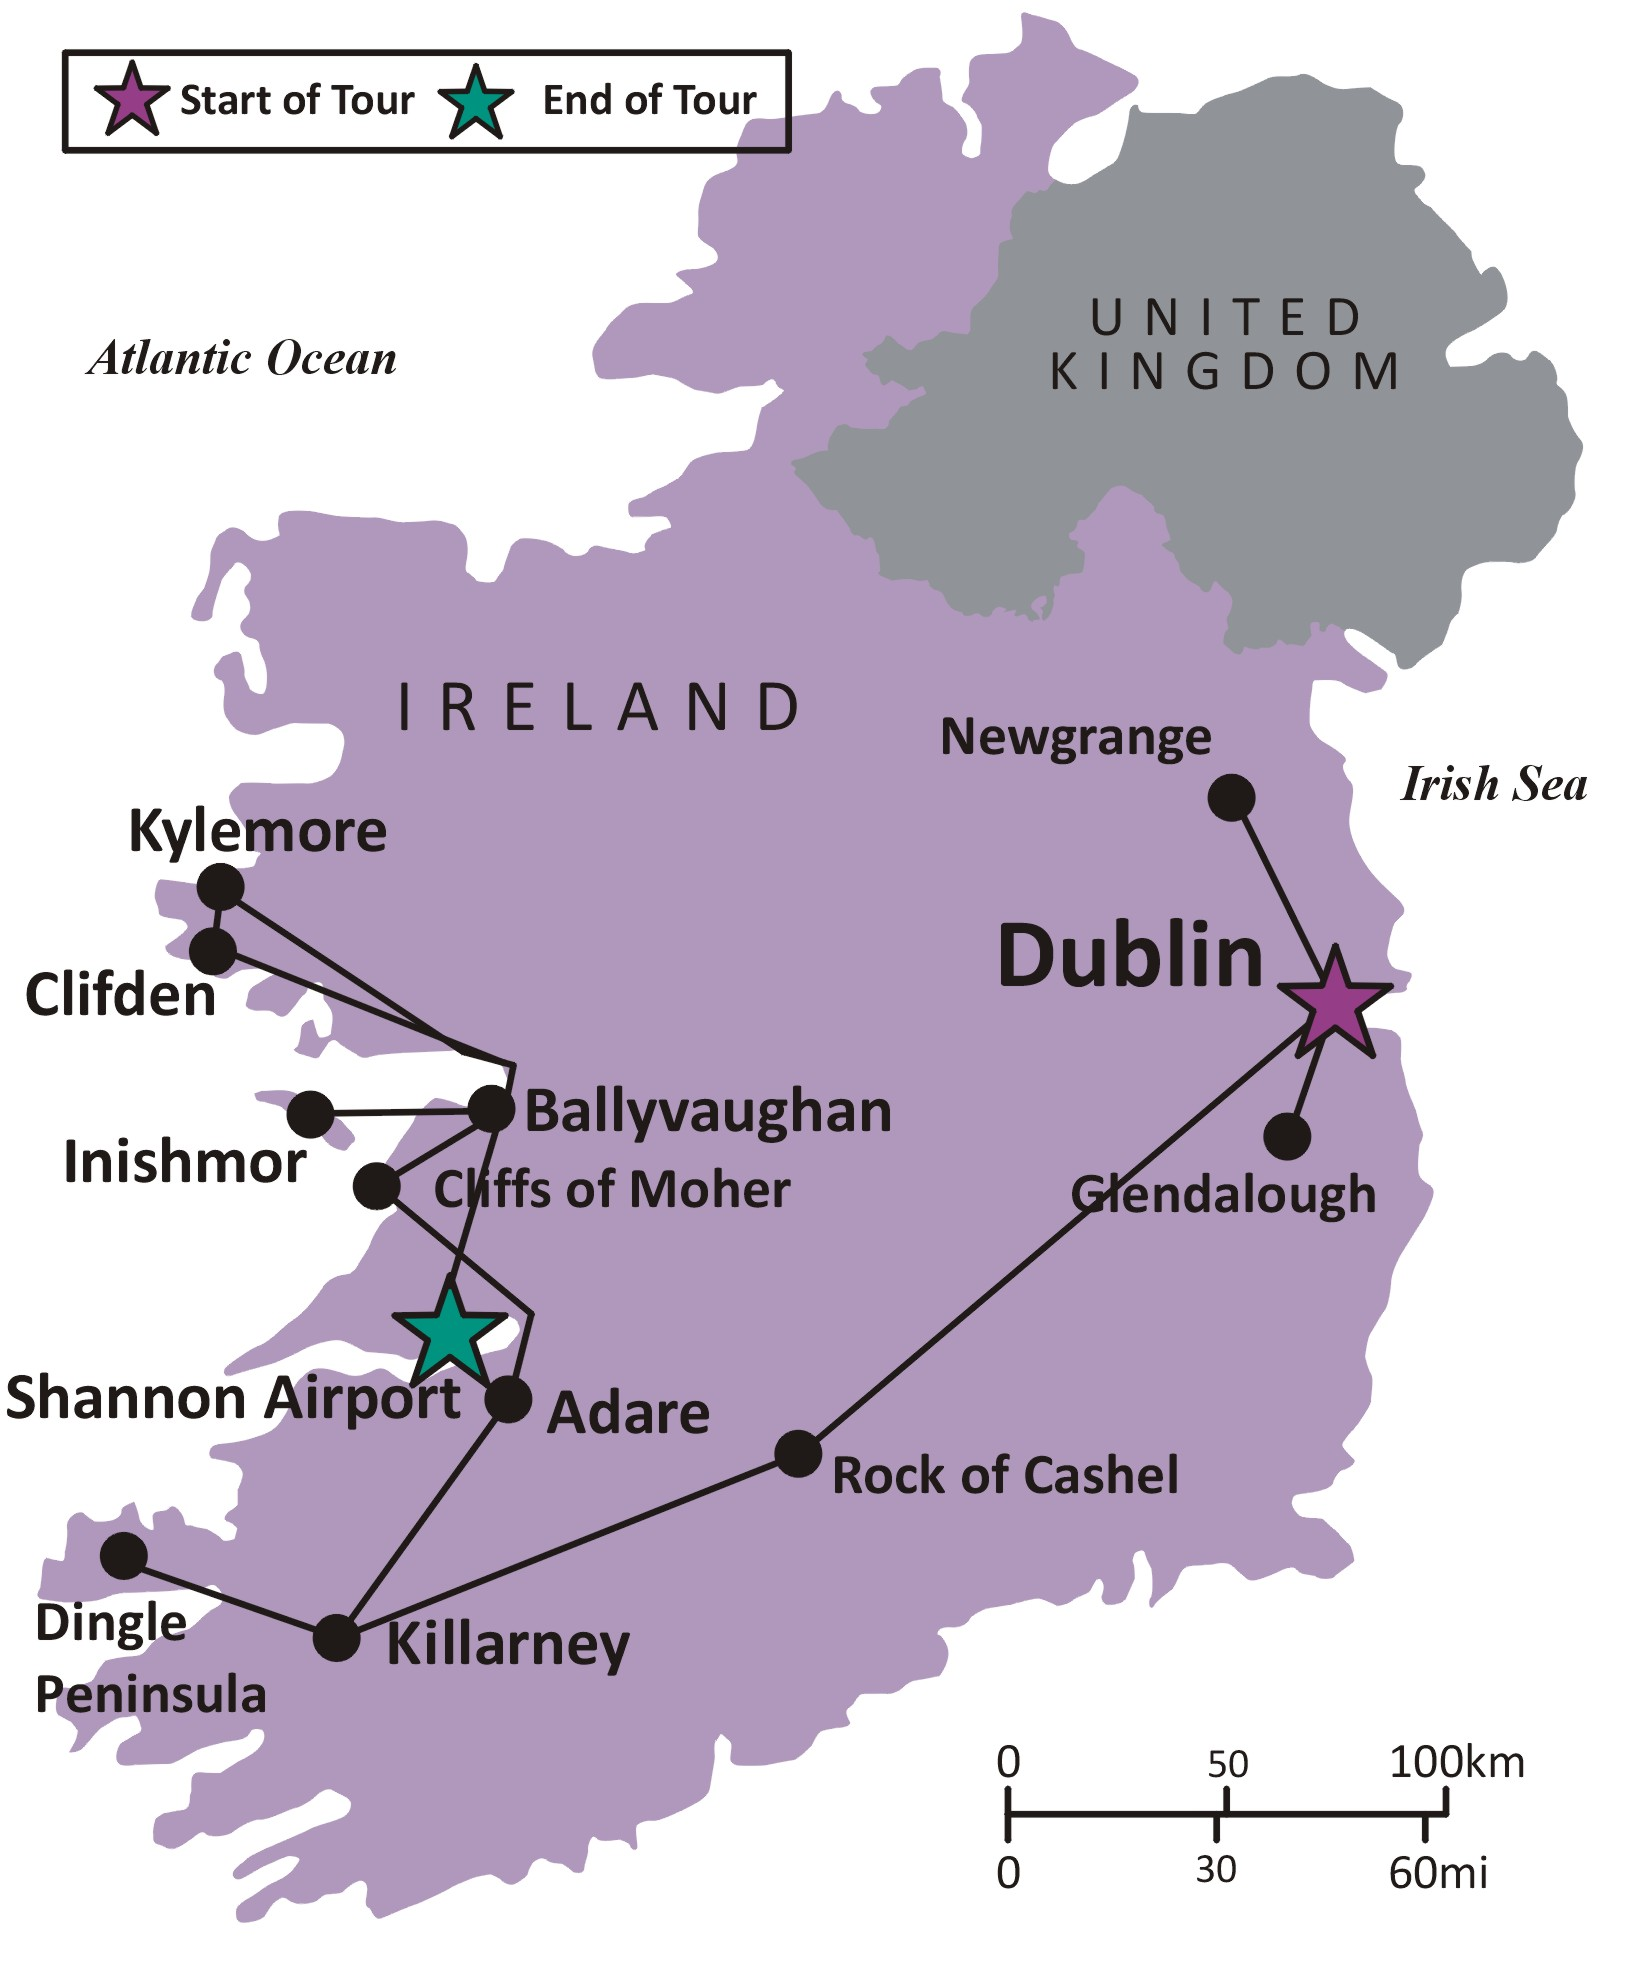 Sights and Soul Travels   Ireland: Dublin and the Emerald Isle